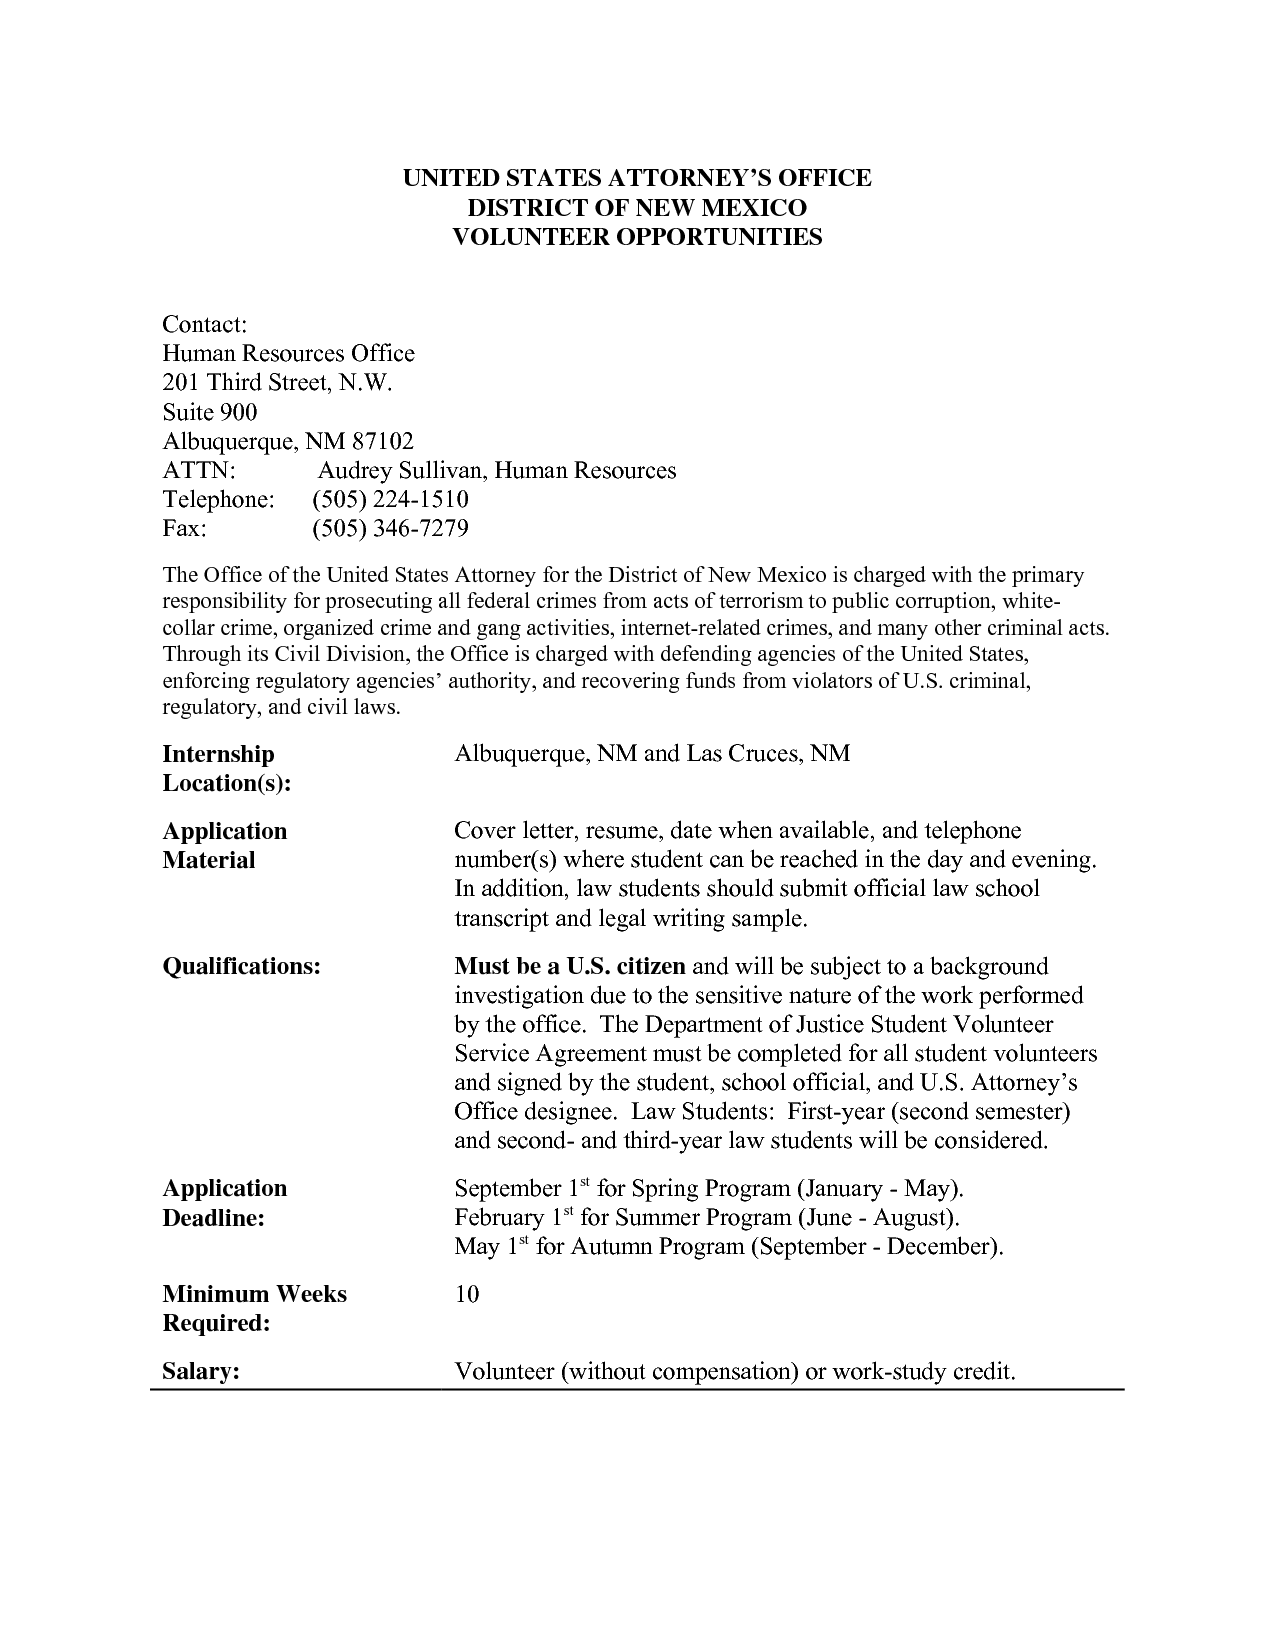 Volunteer Work On ResumeVolunteer Work On Resume Application Letter Sample